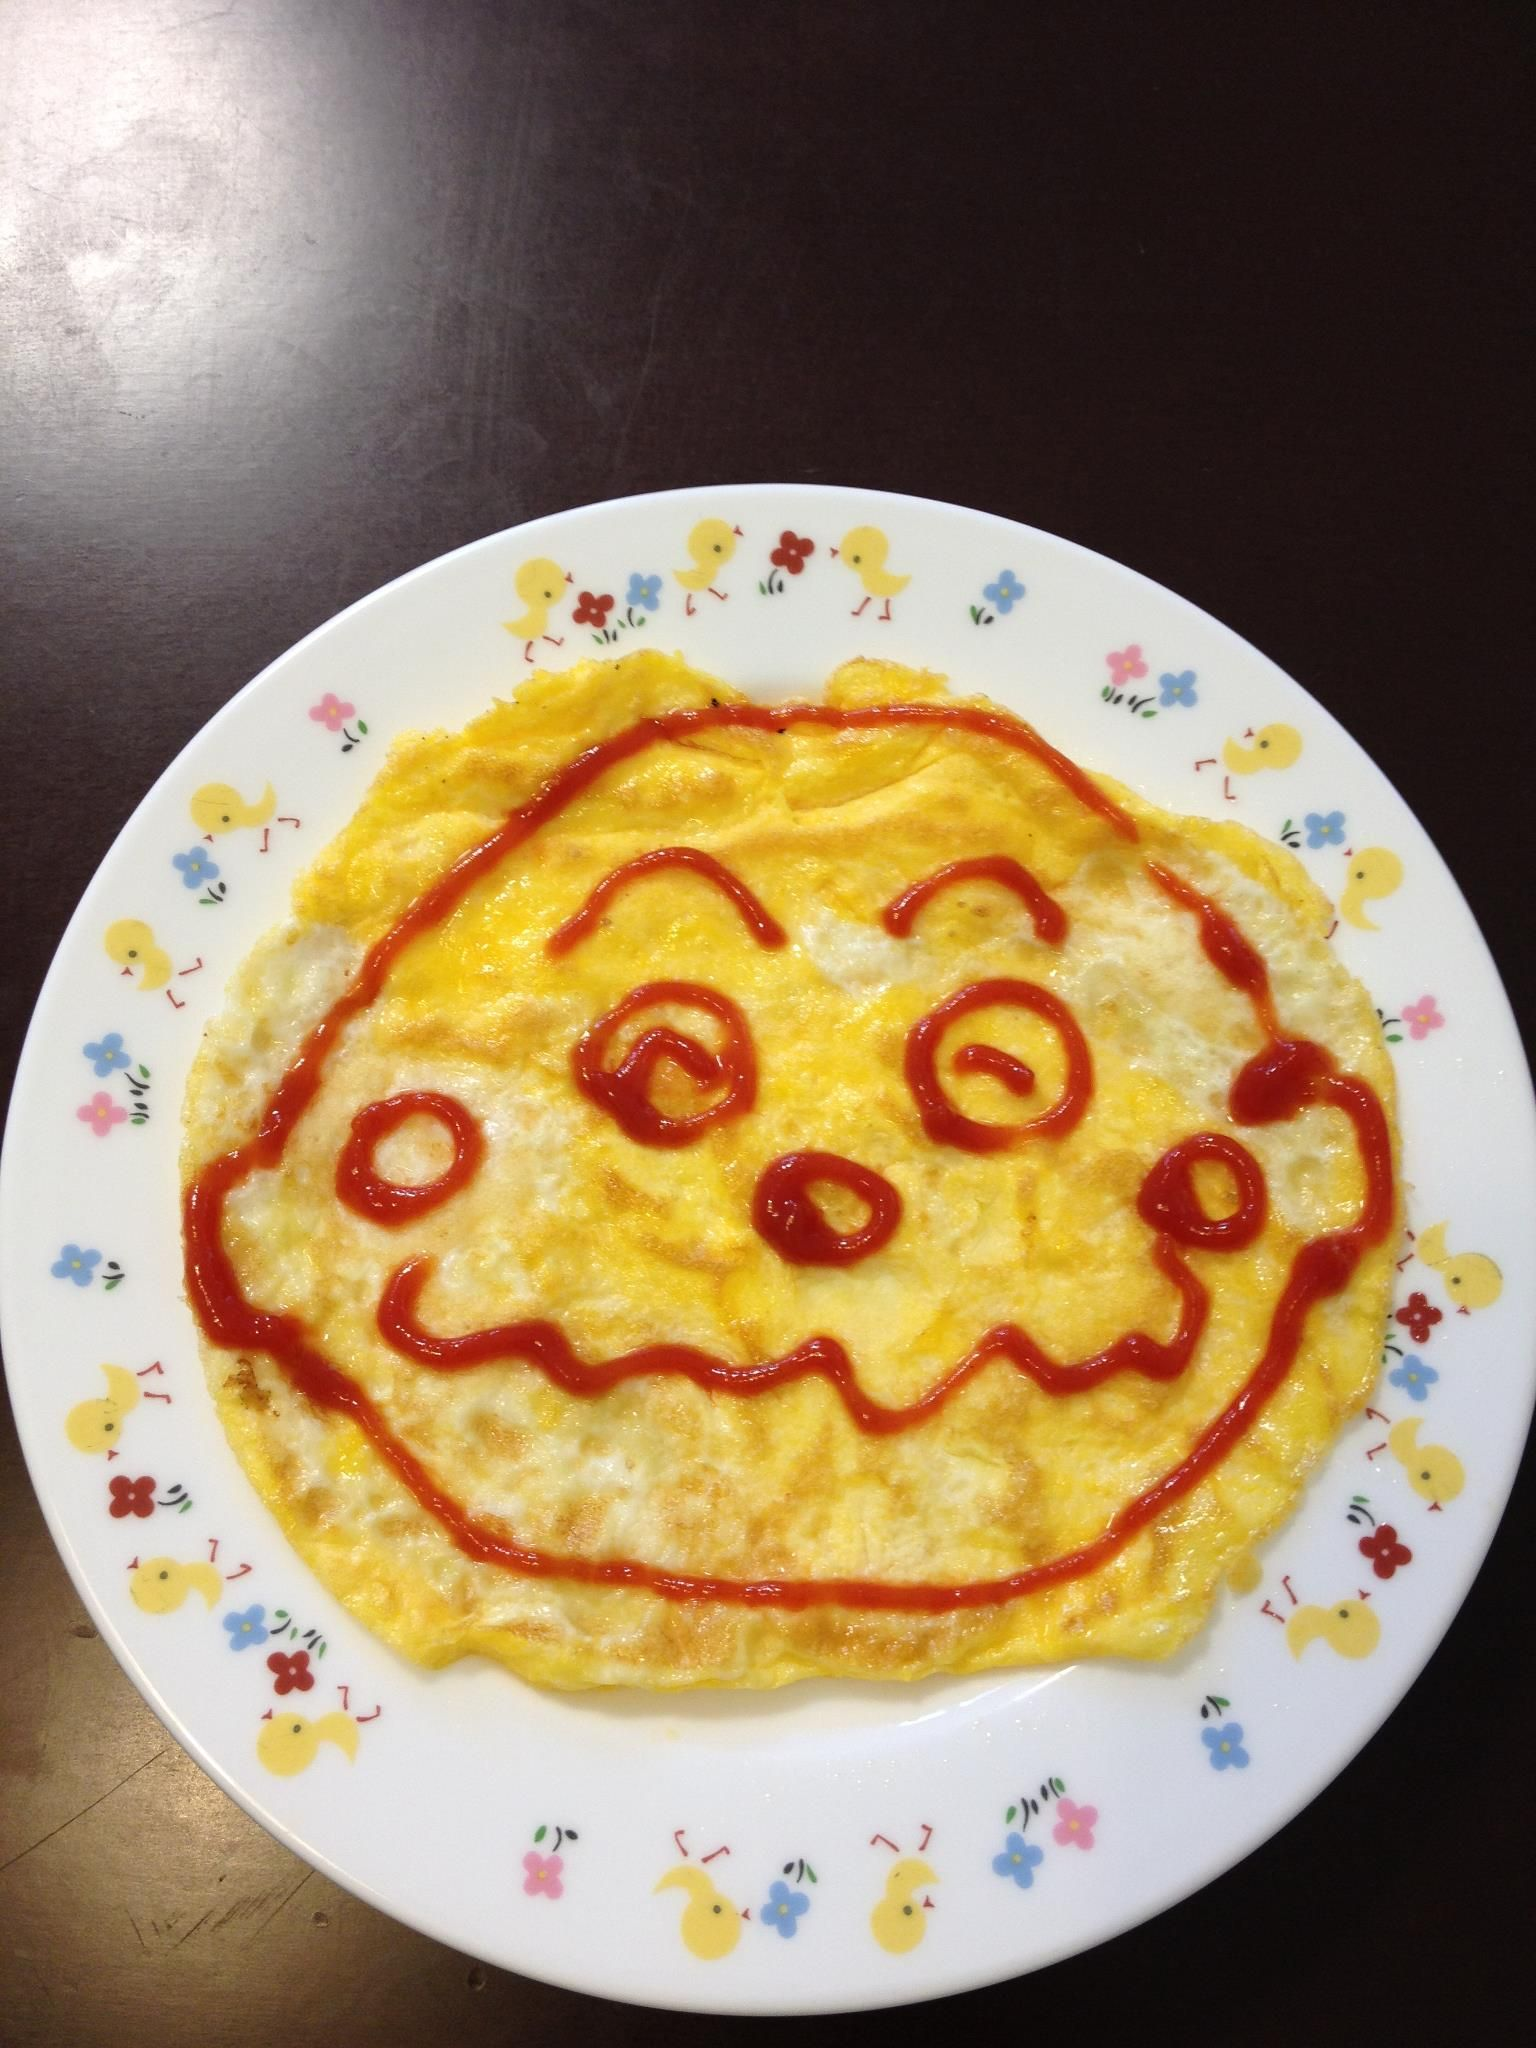 Currypanman from Anpanman